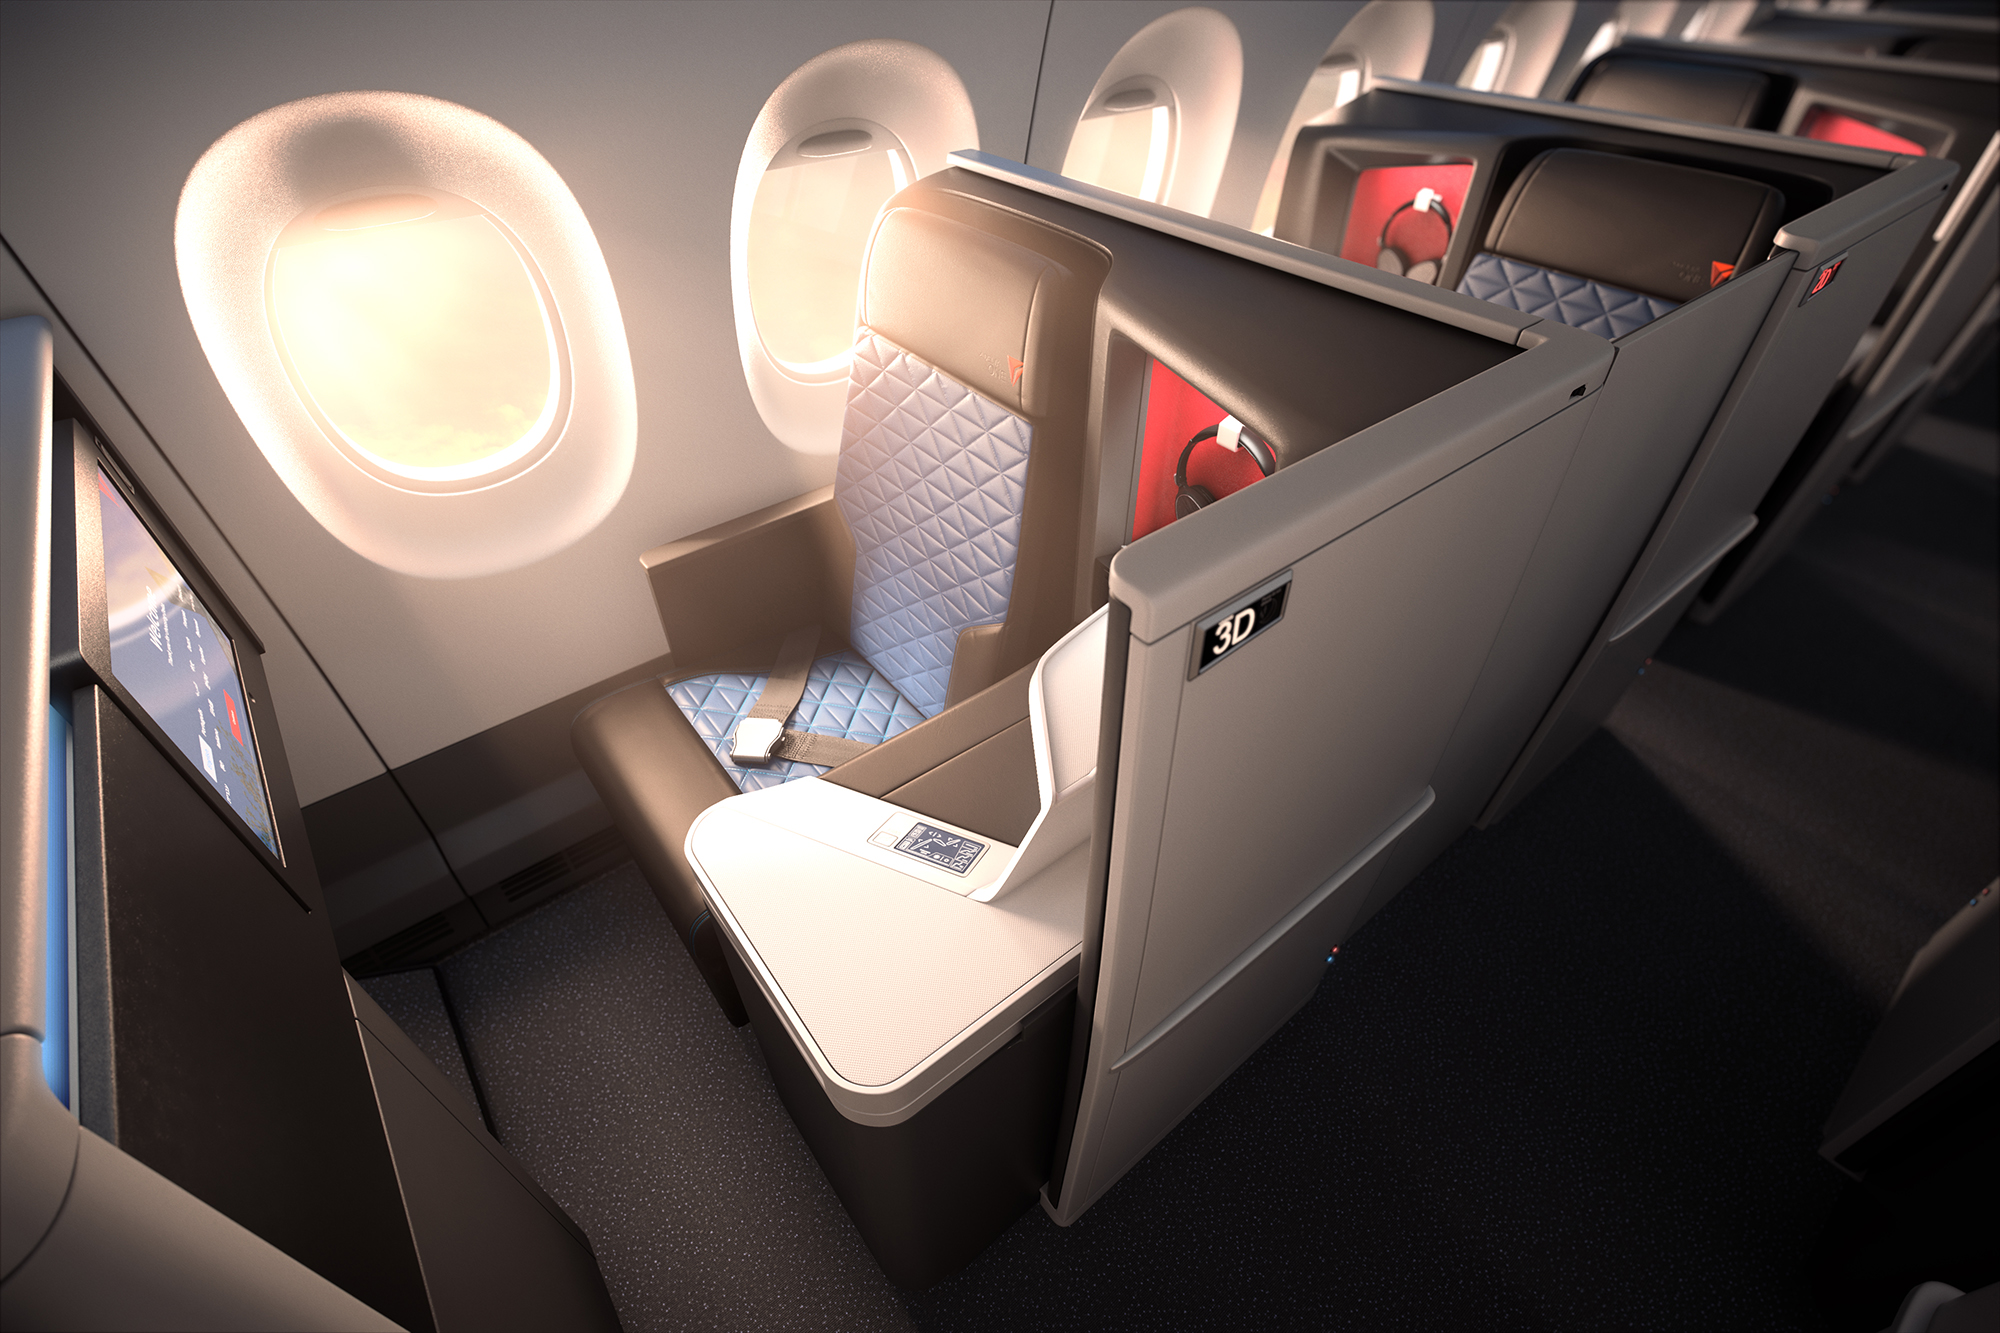 Delta One Suite A350 (Delta Air Lines)